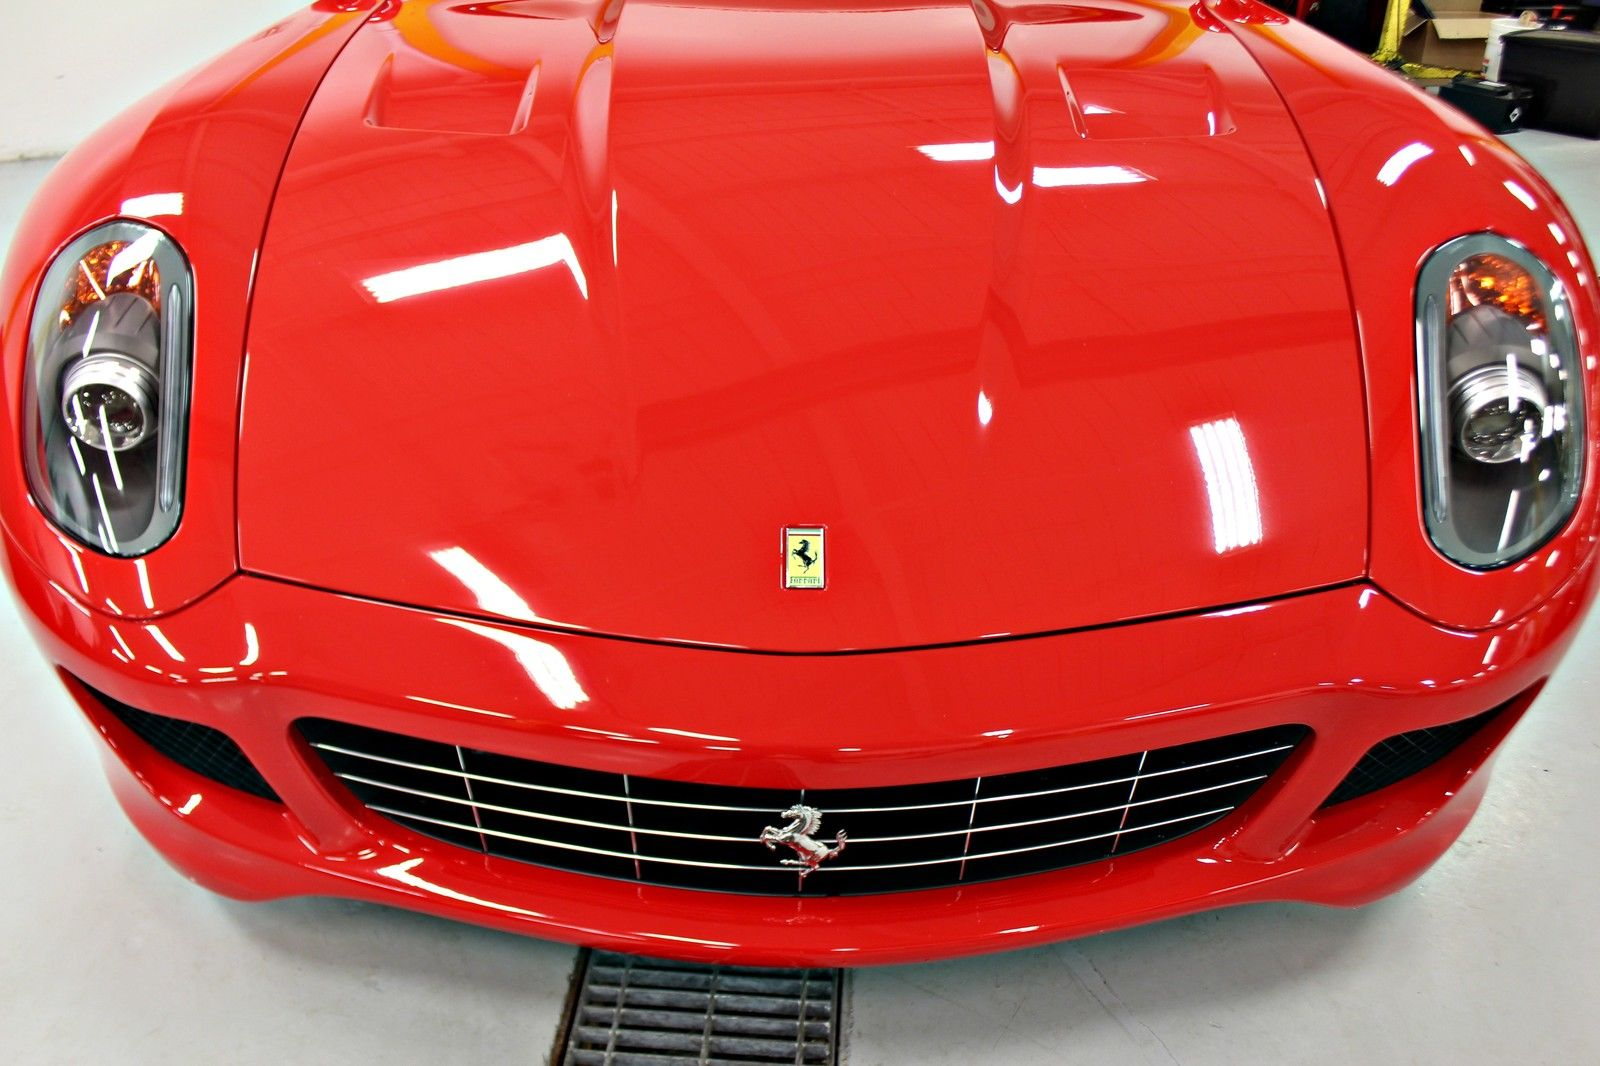 Manual_Ferrari_599_GTB_Fiorano_16